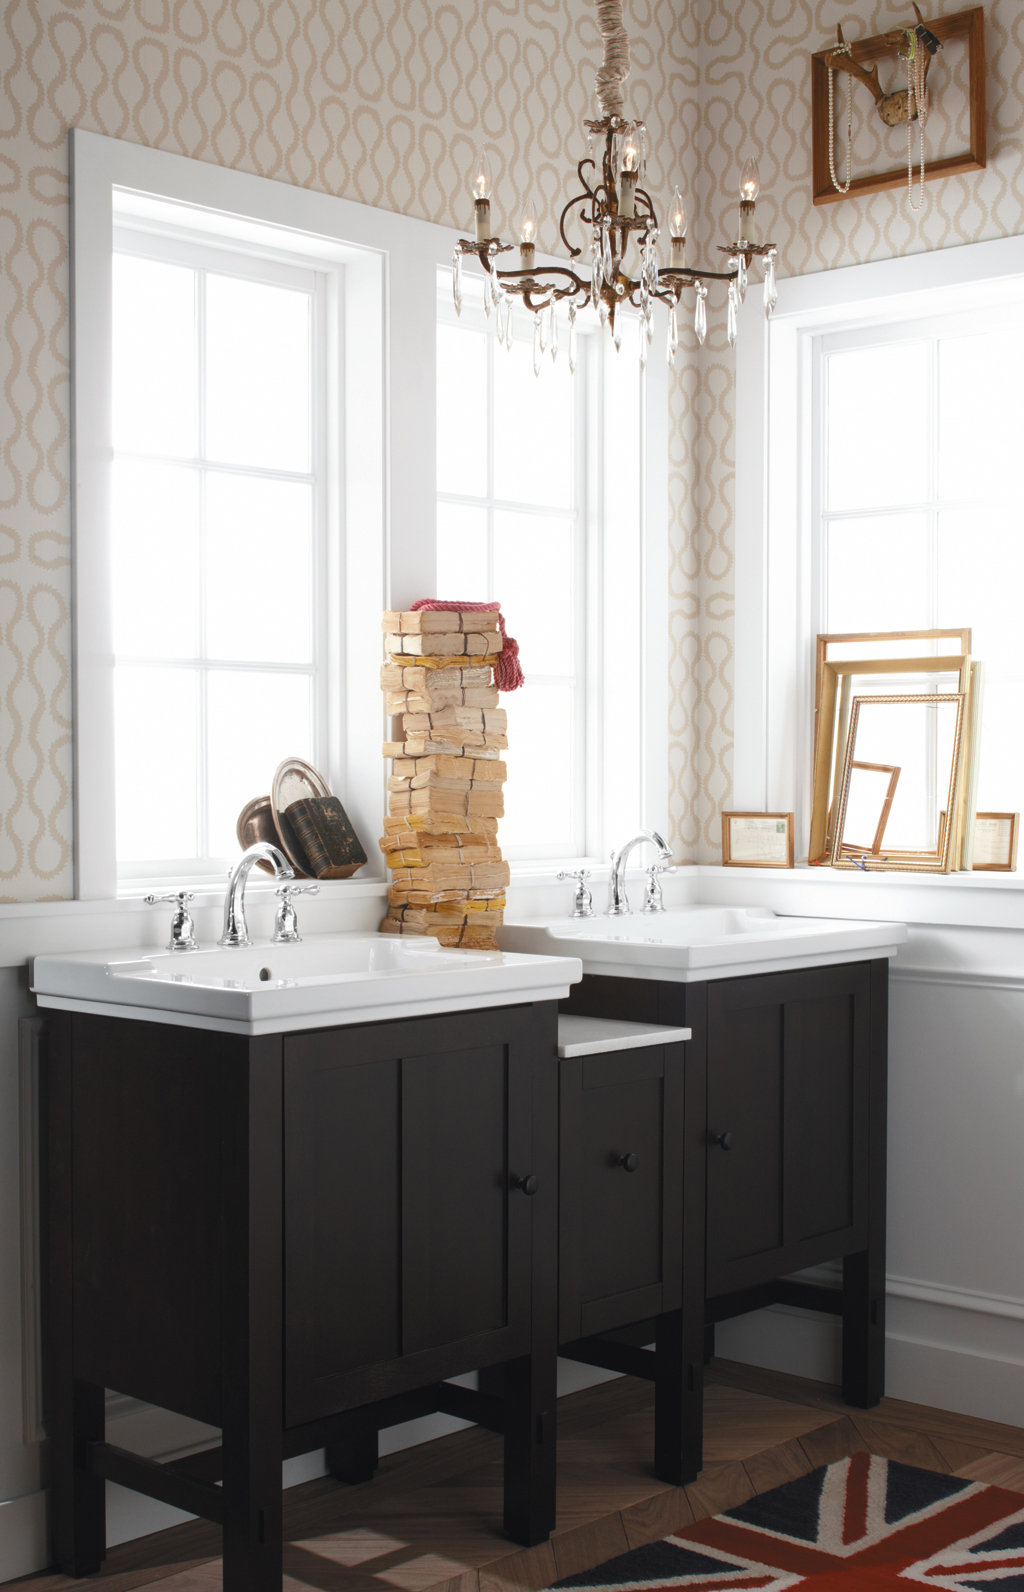 You are here home gt kohler faucet amp toilet parts gt kohler toilet tank - Kohler S Tresham Suite Comprises A Collection Of Mix And Match Fixtures That Allow You To Build An Eclectic Bathroom All Your Own Click Each To Enlarge